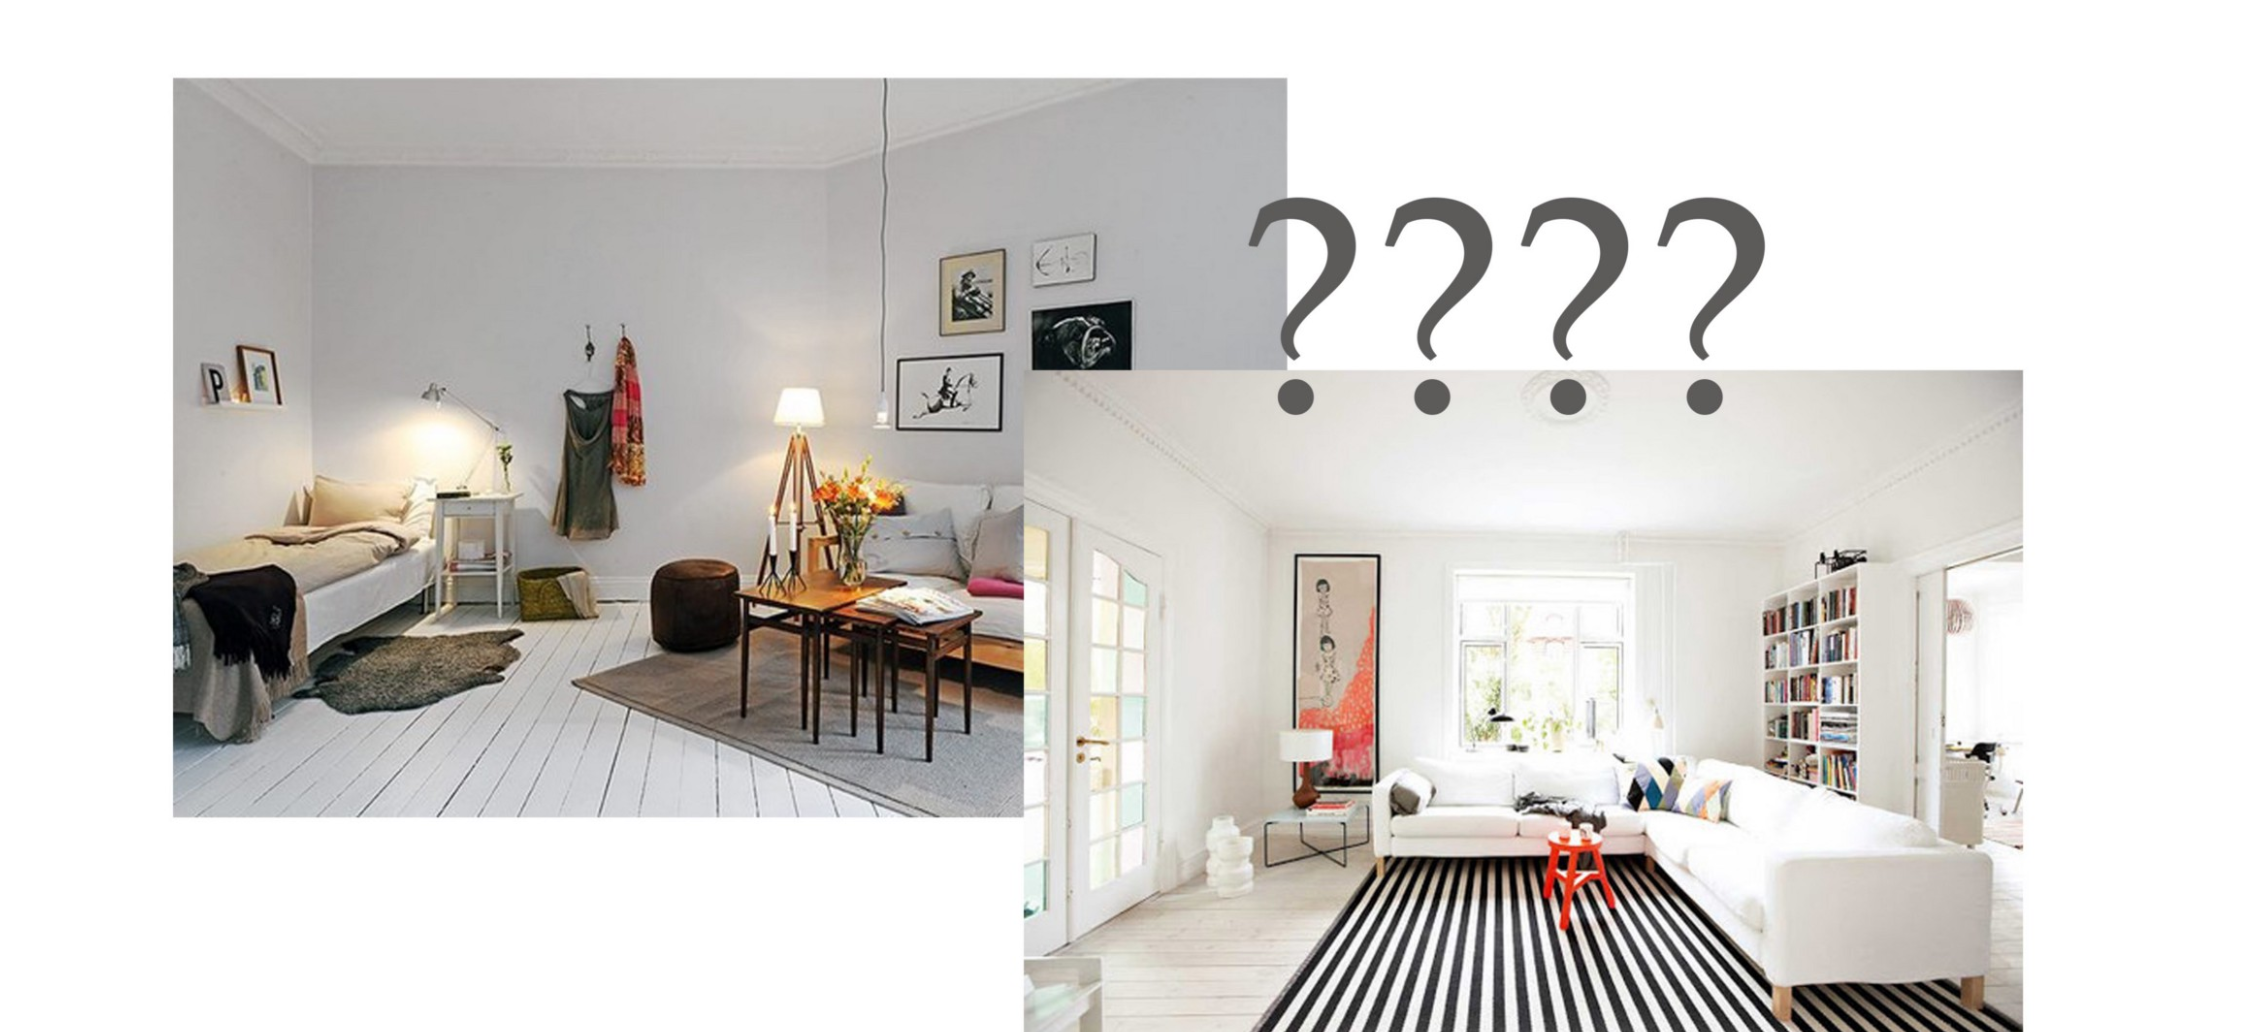 How to make the room look bigger basics of interior - How to make your room look bigger ...